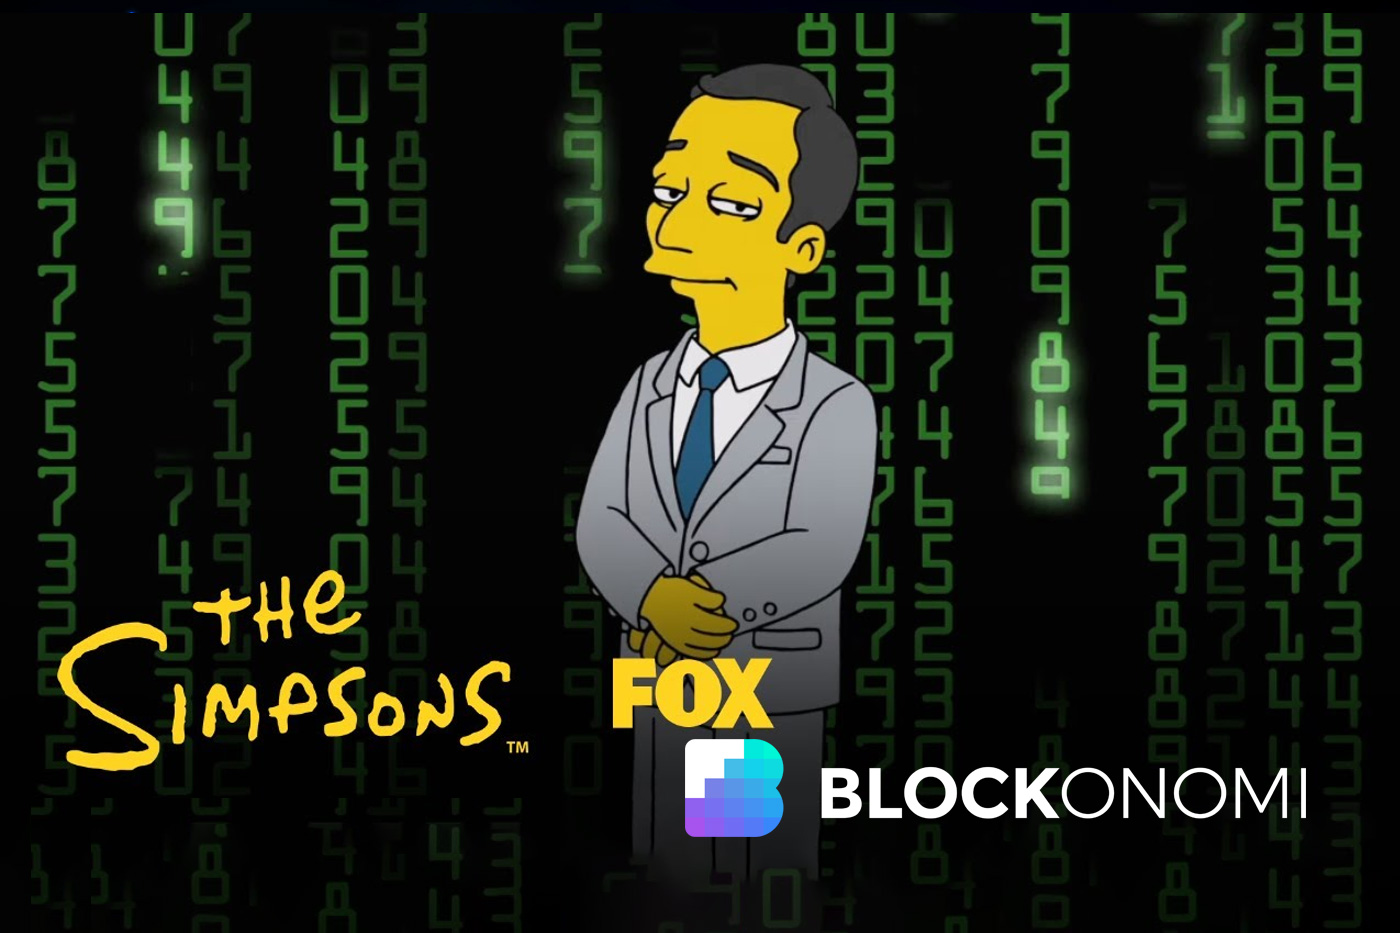 What The Simpsons Had to Say About Crypto in Sunday's Episode